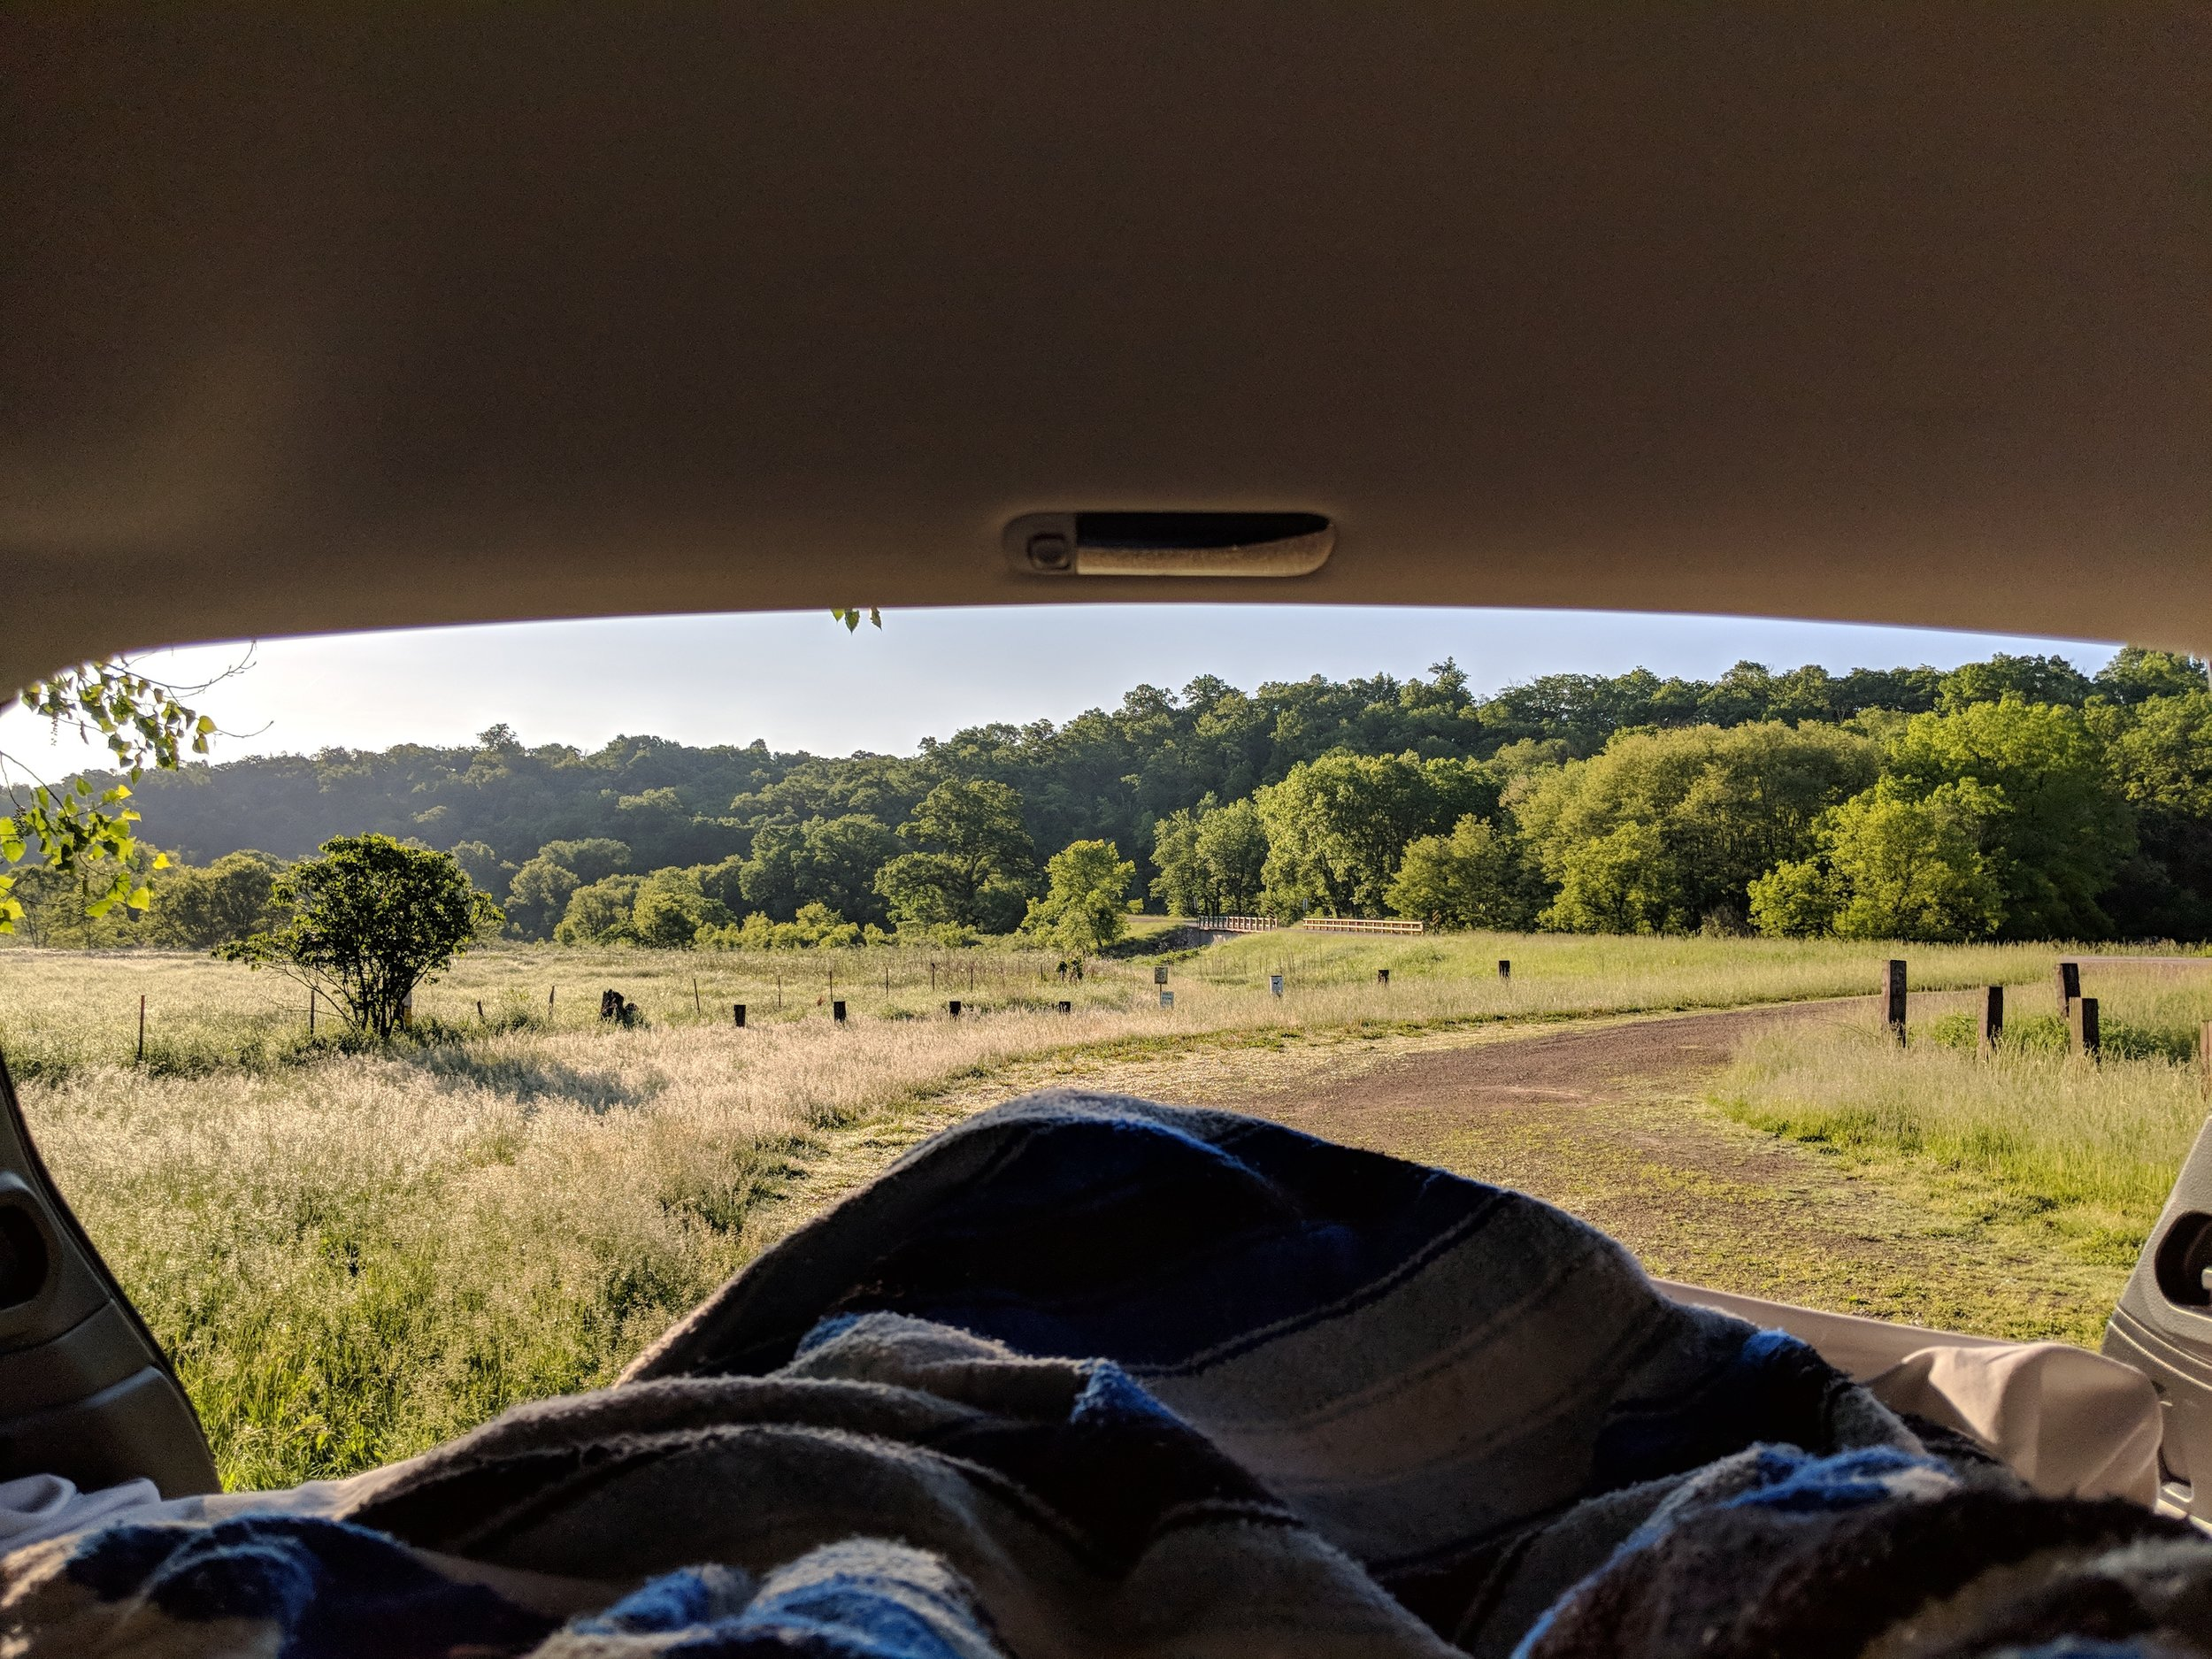 Morning view from the car near Castle Rock, WI.